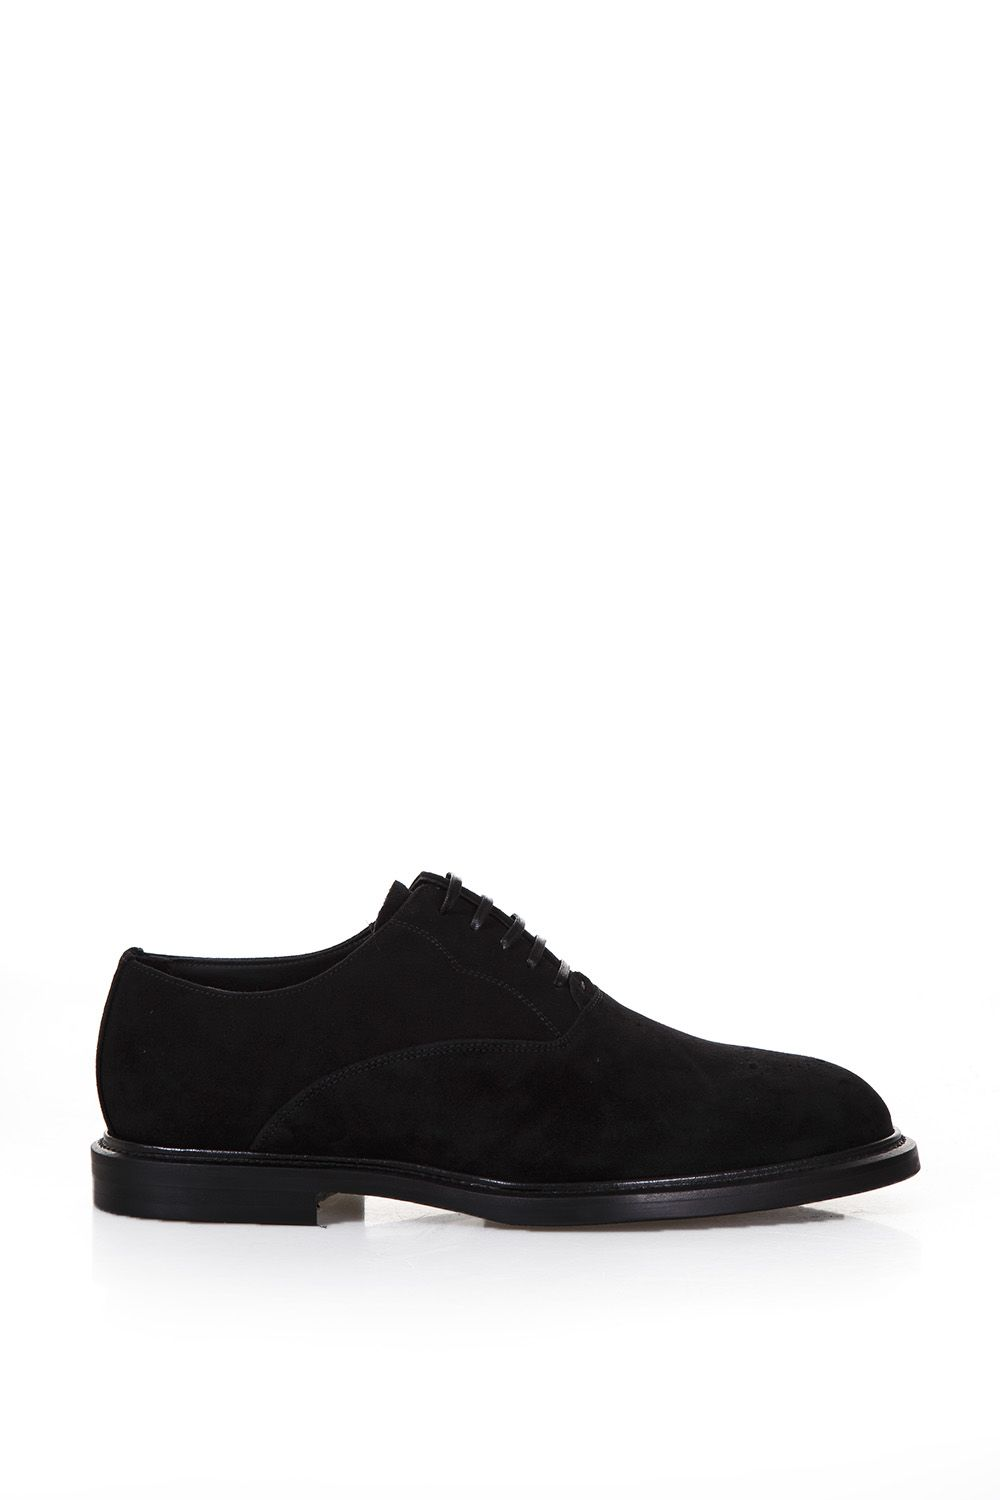 Dolce & Gabbana Brogue Suede Lace-up Shoes